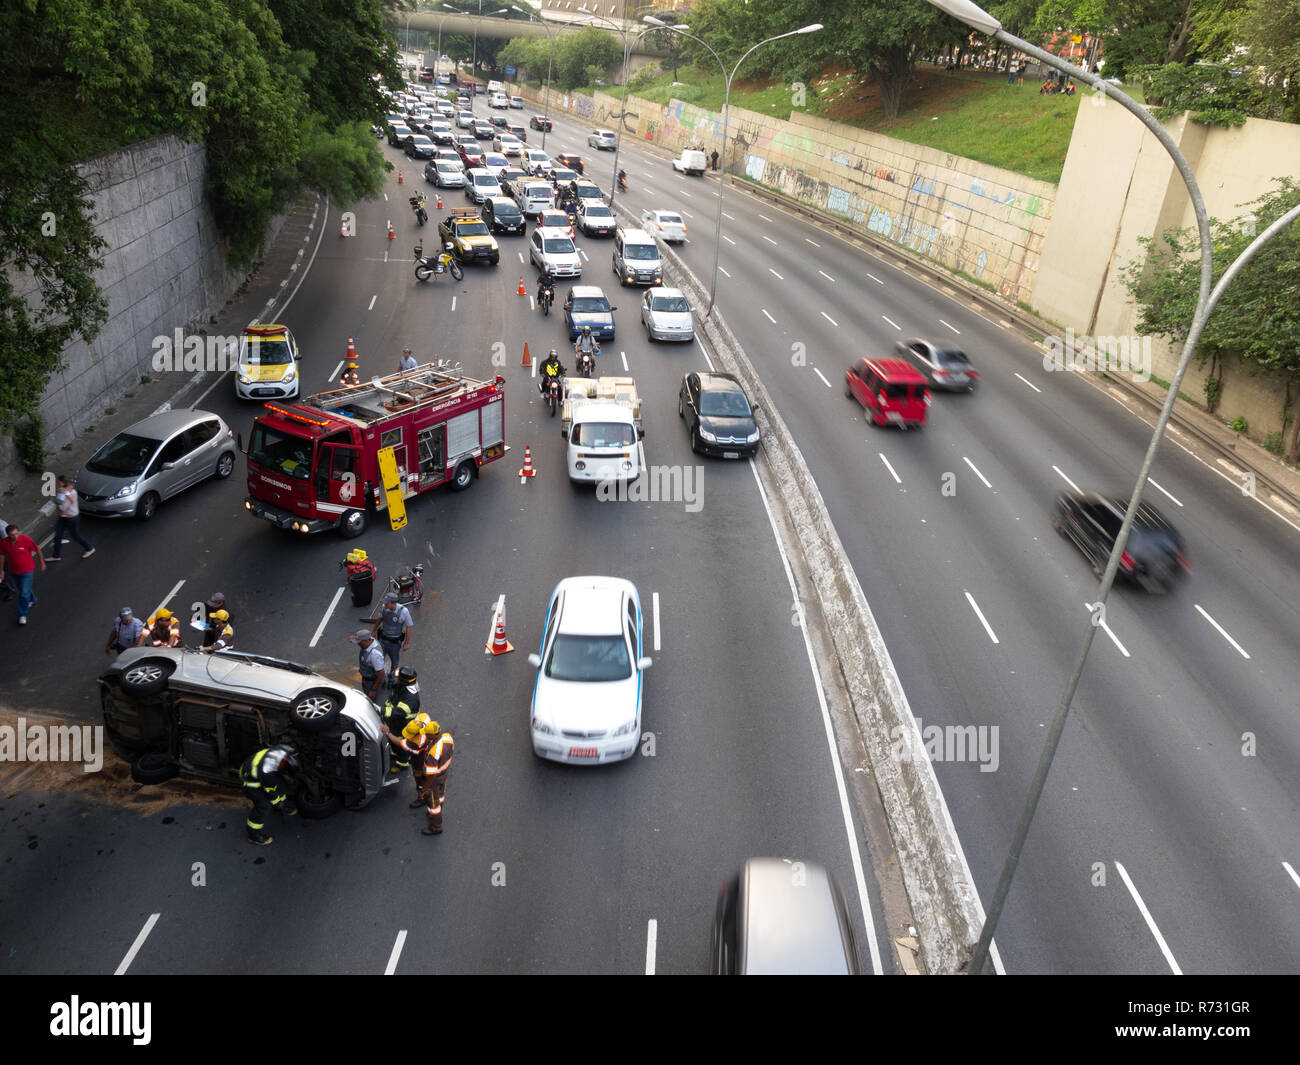 Extrication scene, firefighters and 'Traffic Engineering Company (CET)' at the car rollover accident scene, Av. 23 de Maio, Paraiso, Sao Paulo, Brazil Stock Photo